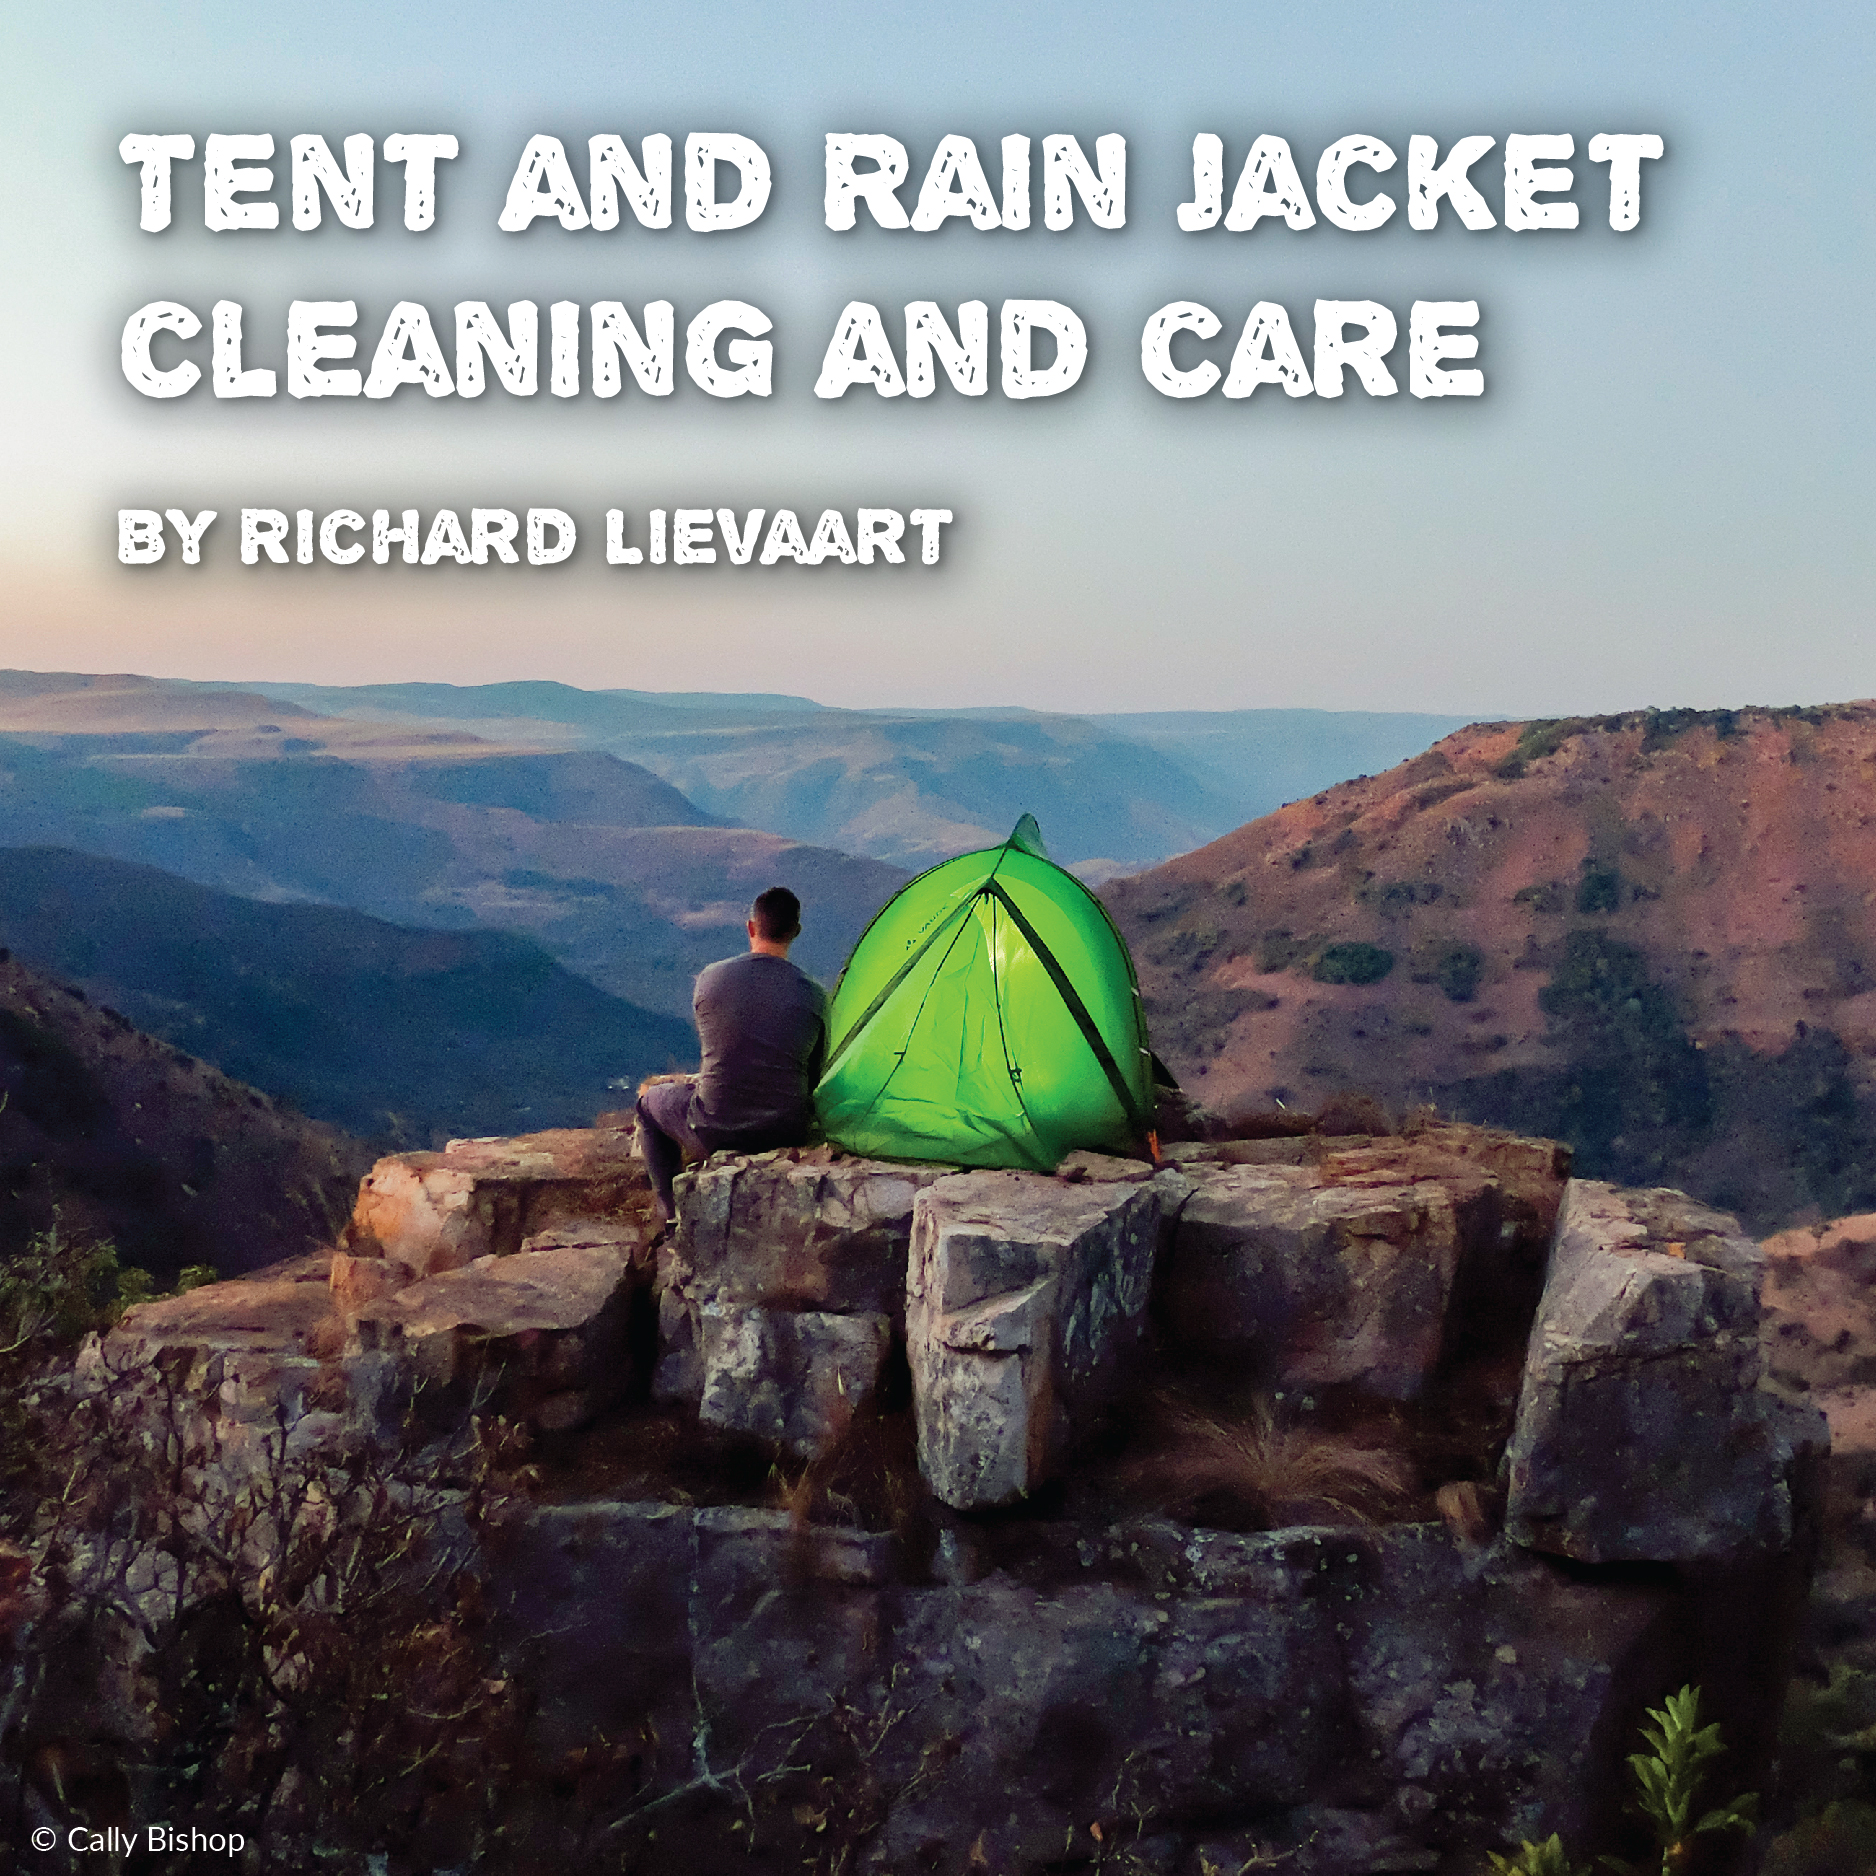 Cleaning and Caring for your gear - Tents and Rain Jackets